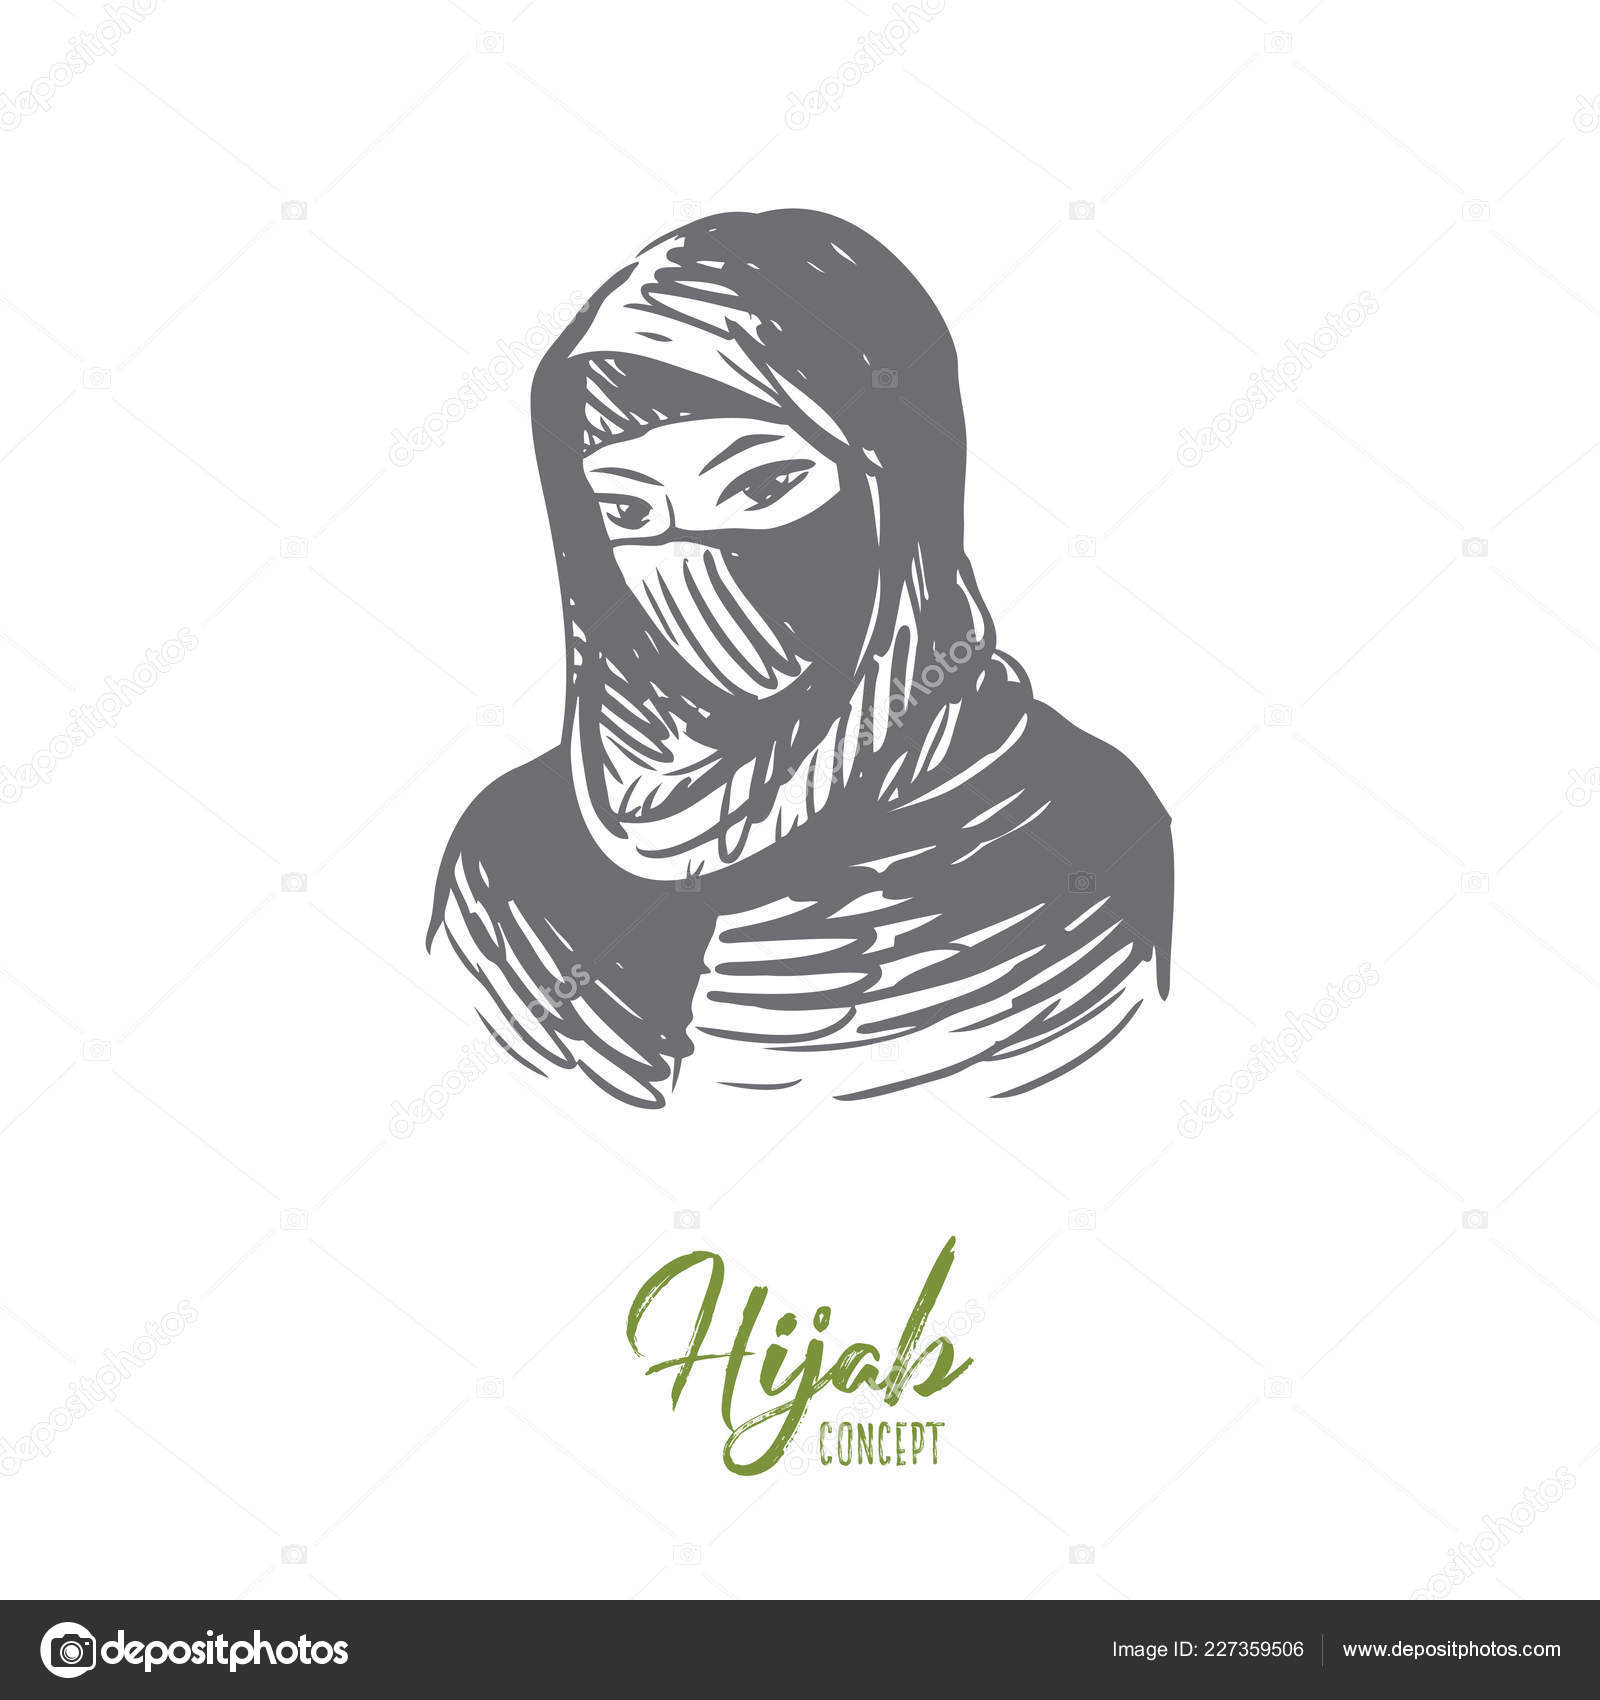 Woman hijab girl islam young concept hand drawn portrait of young muslim woman in hijab concept sketch isolated vector illustration